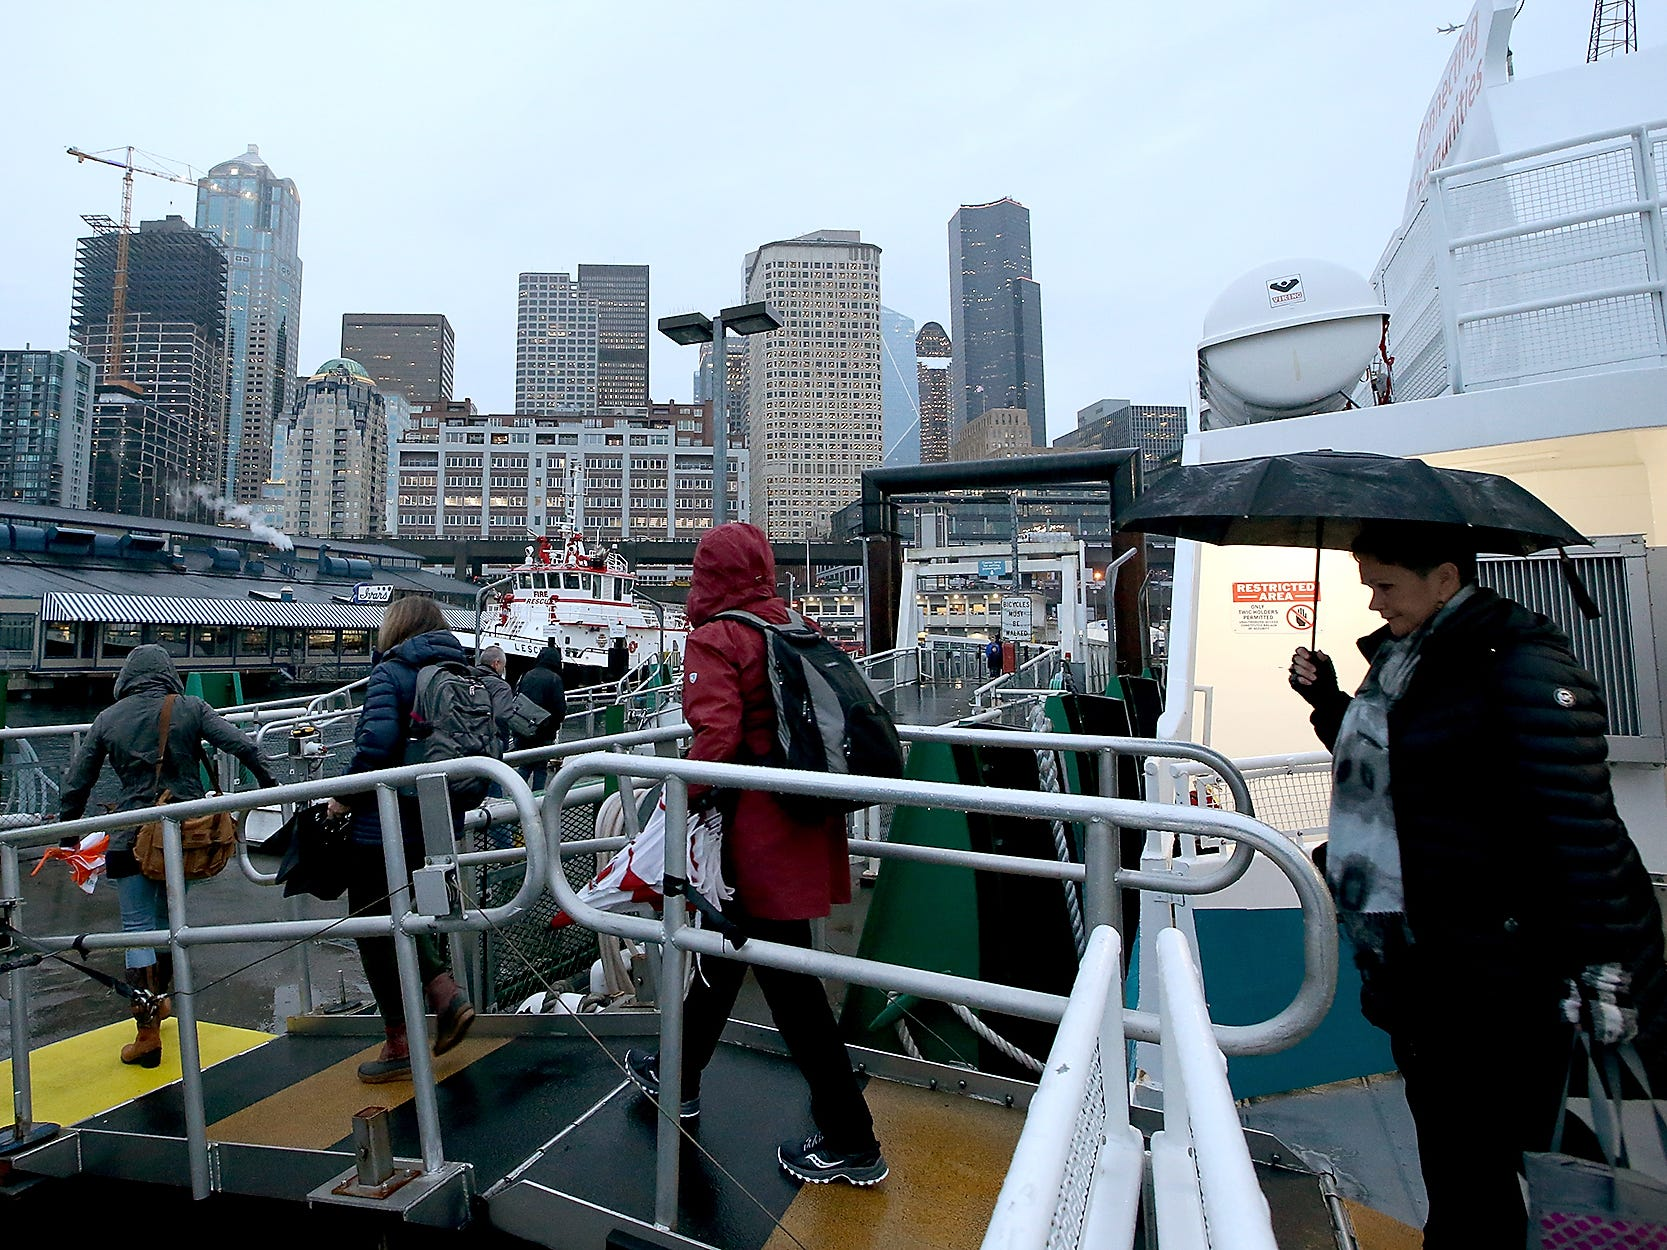 Passengers disembark the M/V Finest in Seattle after taking the 7:05 boat from Kingston on Monday, November 26, 2018.